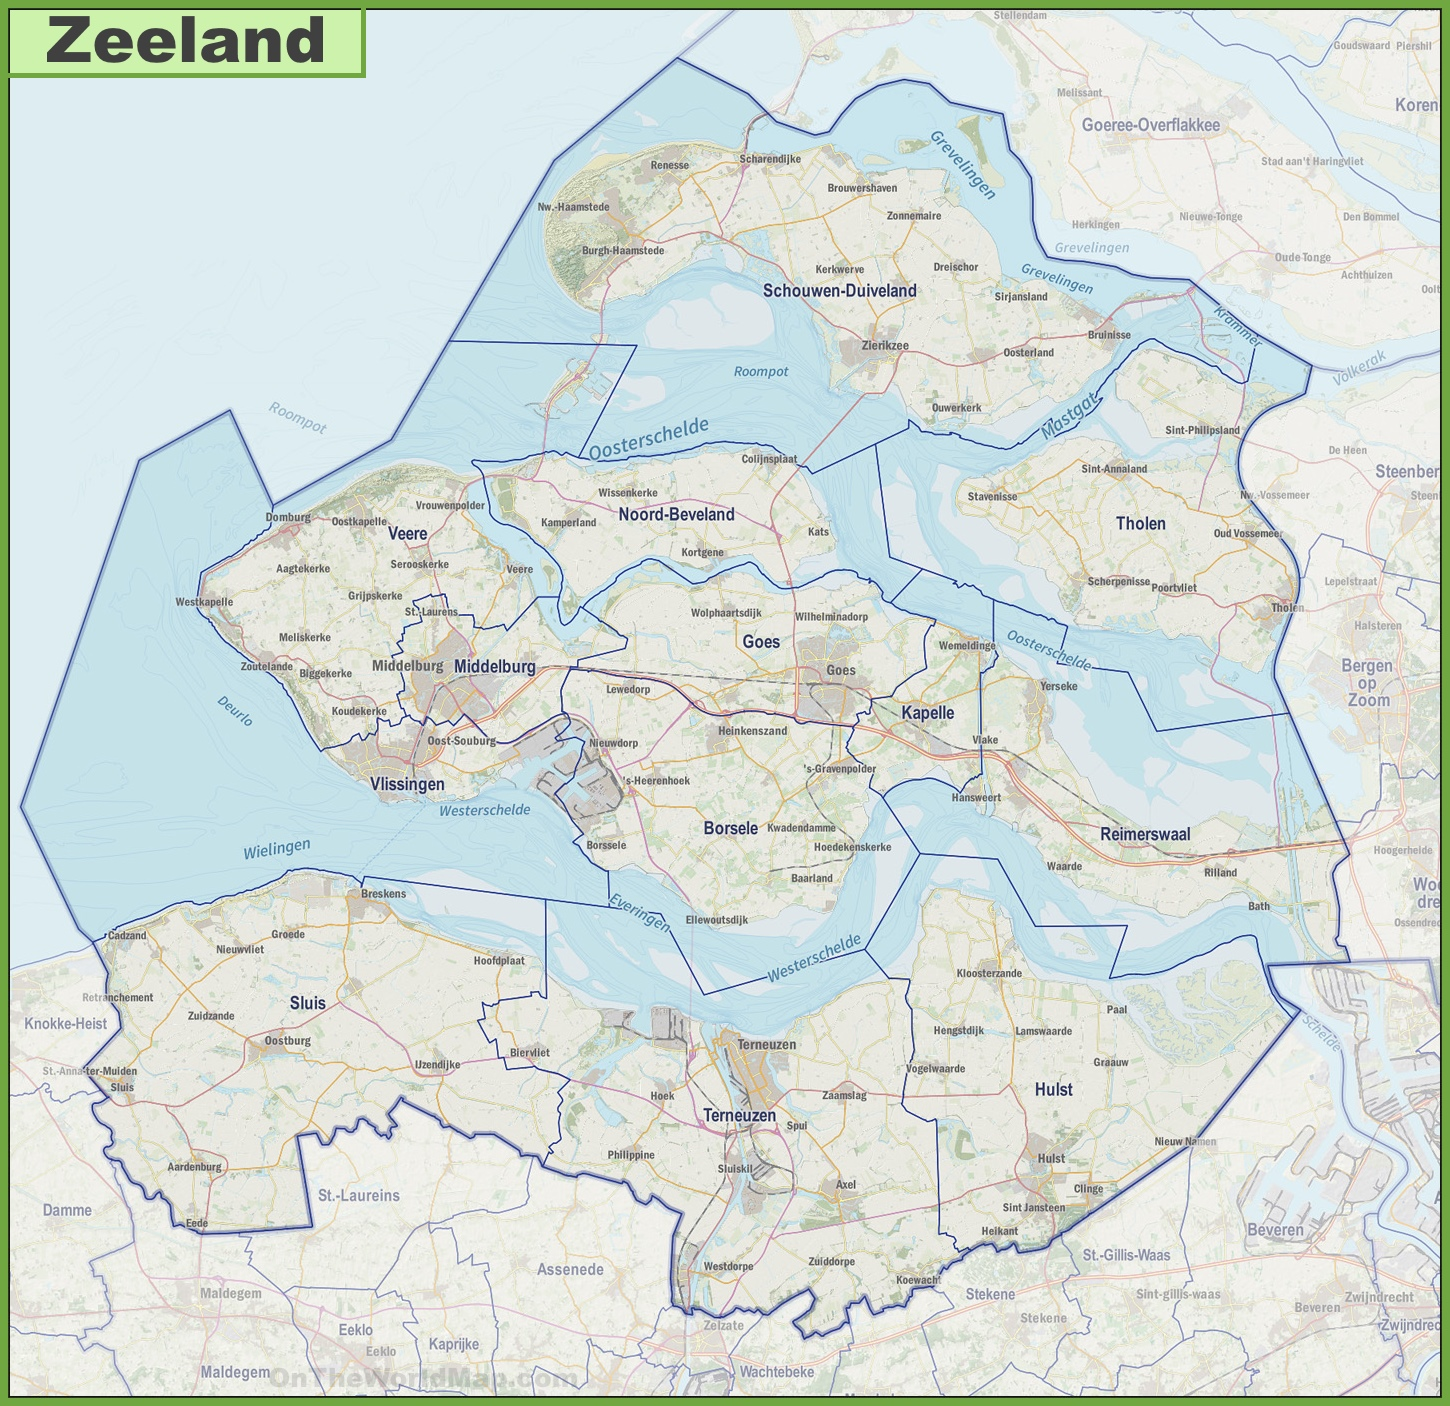 Map of Zeeland with cities and towns